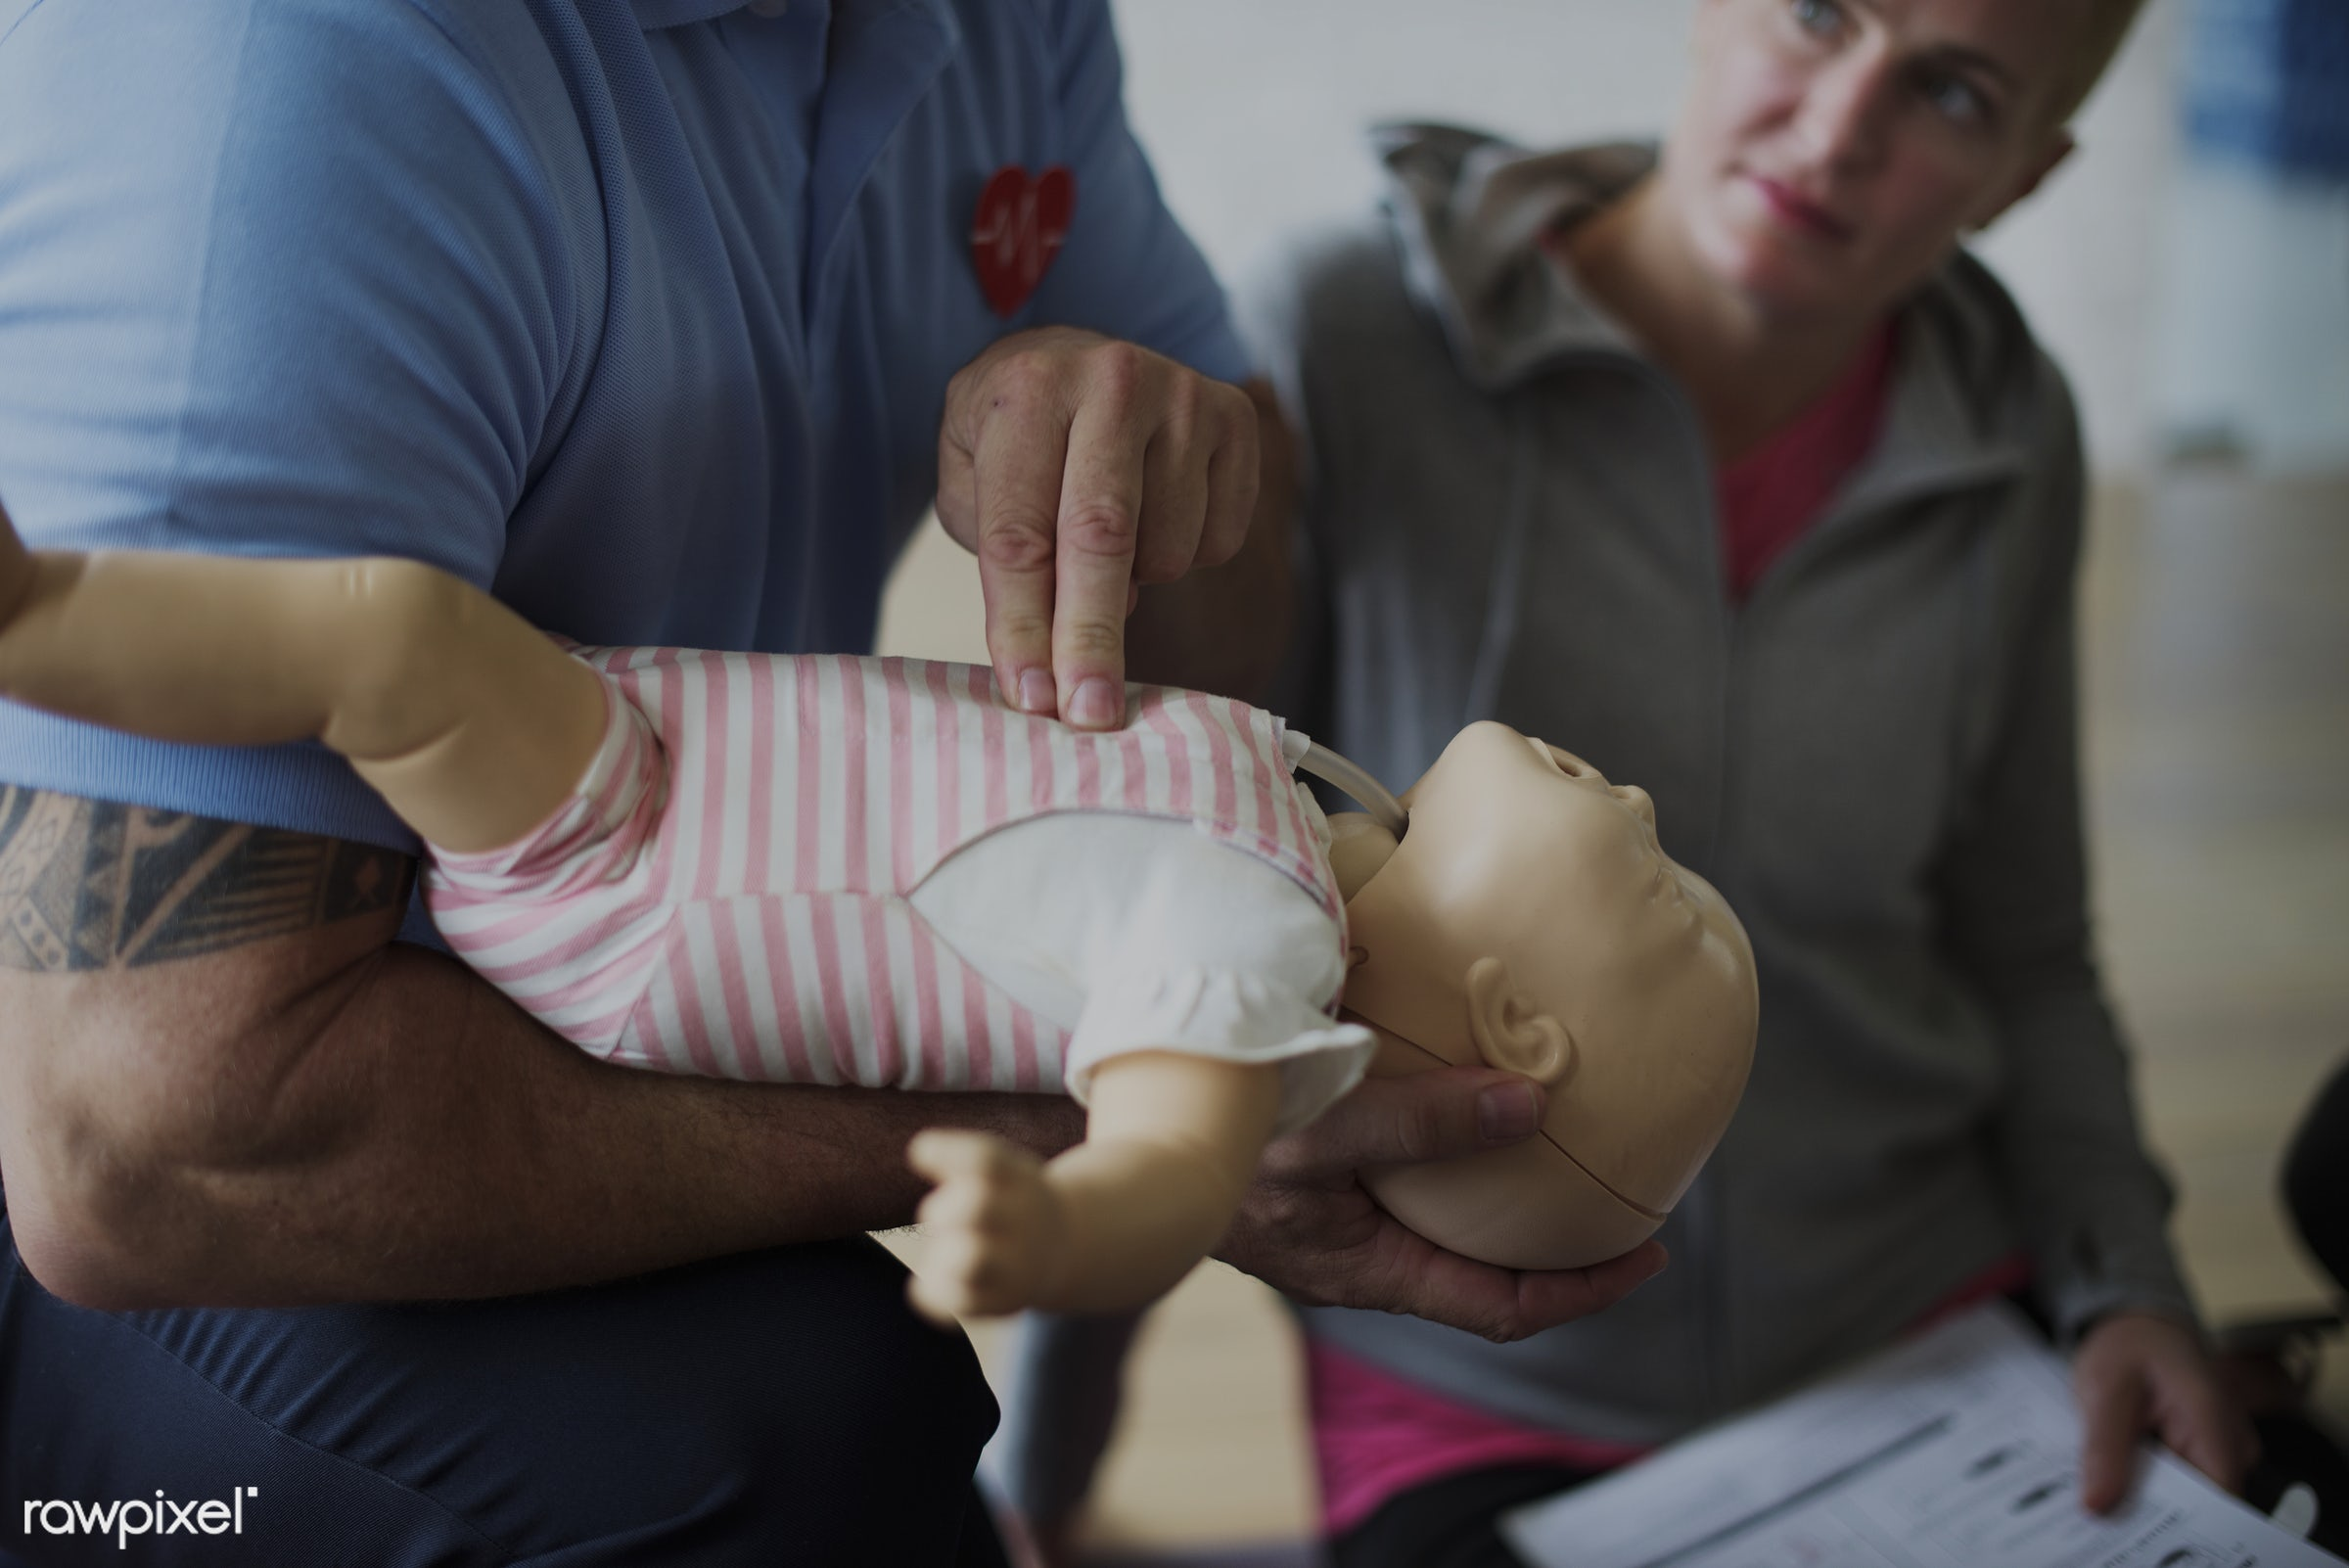 Baby CPR first aid training - cpr training, person, knowledge, save, first aid, treatment, resuscitation, emergency, indoors...